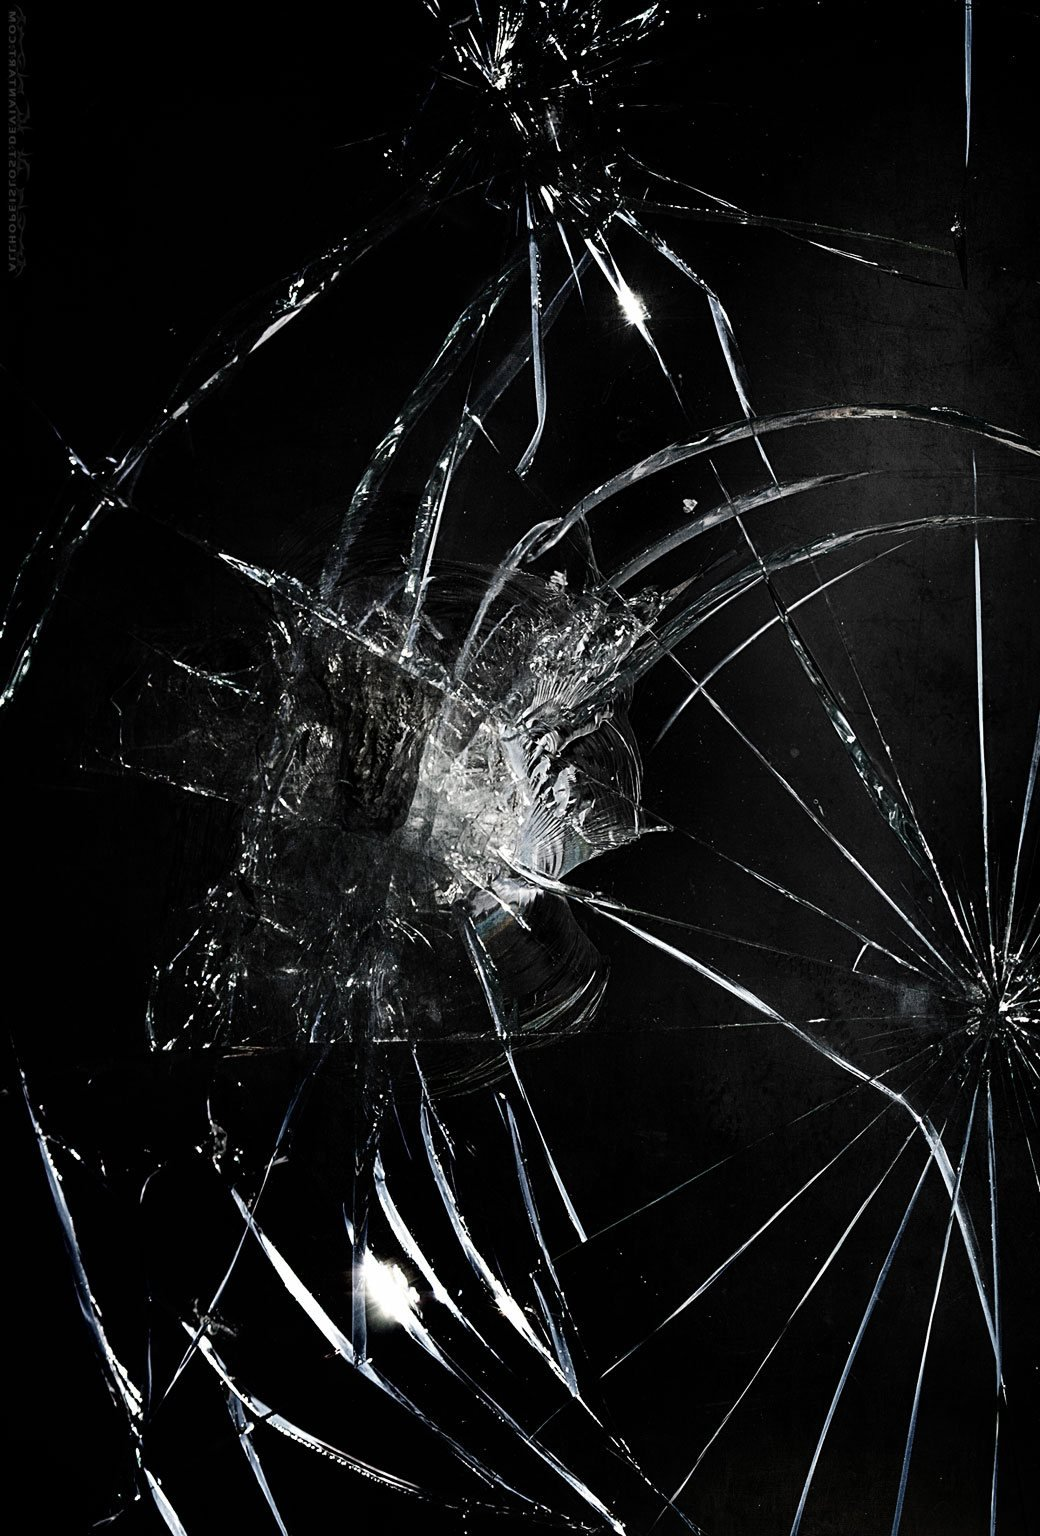 Free Download Broken Realistic Cracked Screen Hd Wallpapers